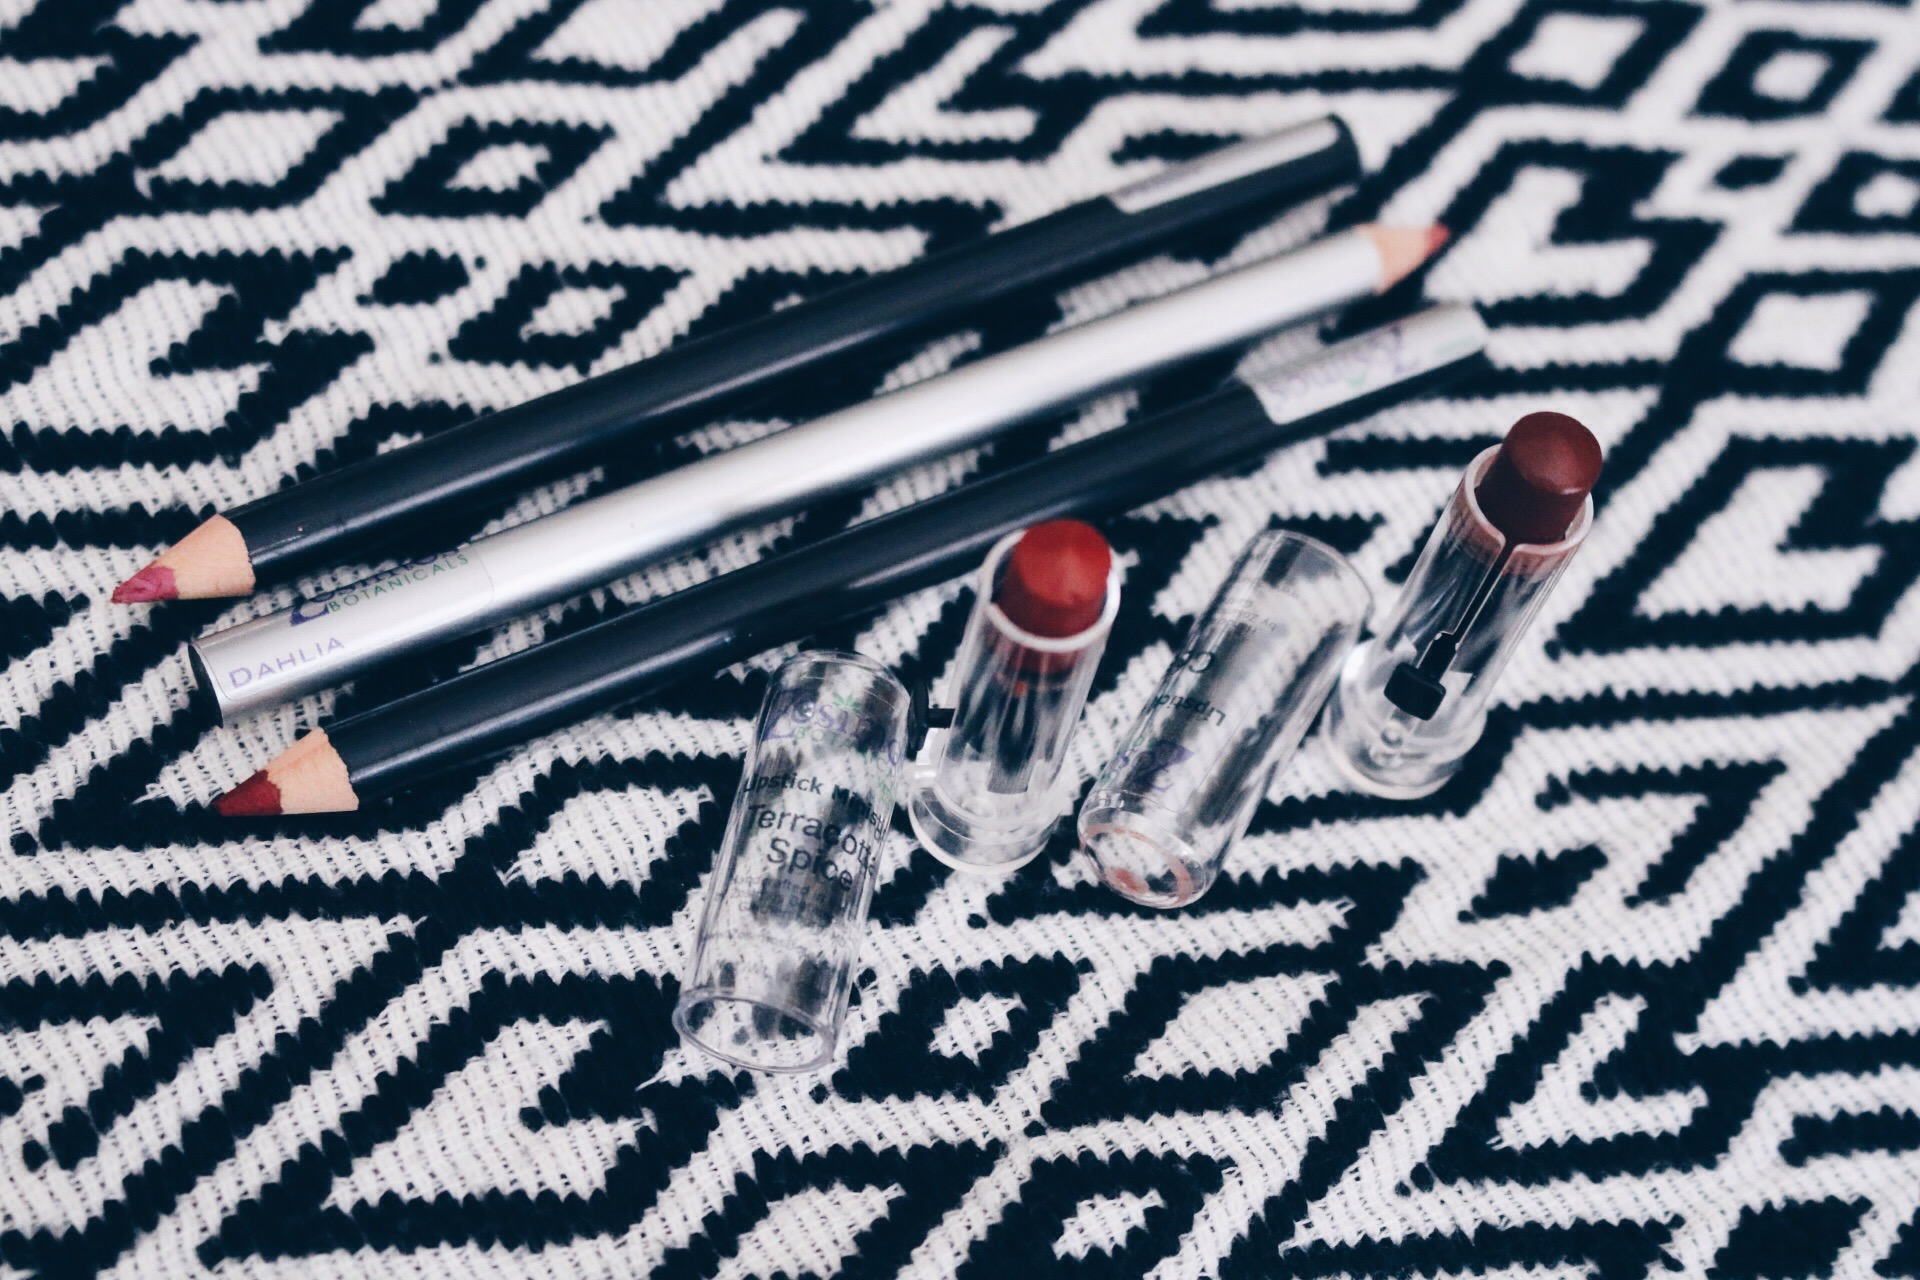 """ZOSIMOS BOTANICALS   LIP LINER (TOP-BOTTOM) IN """"PEONY,"""" """"DAHLIA,"""" AND """"GARNET,"""" AND LIPSTICK (L-R) IN """"TERRACOTTA SPICE"""" AND """"COCOA"""""""